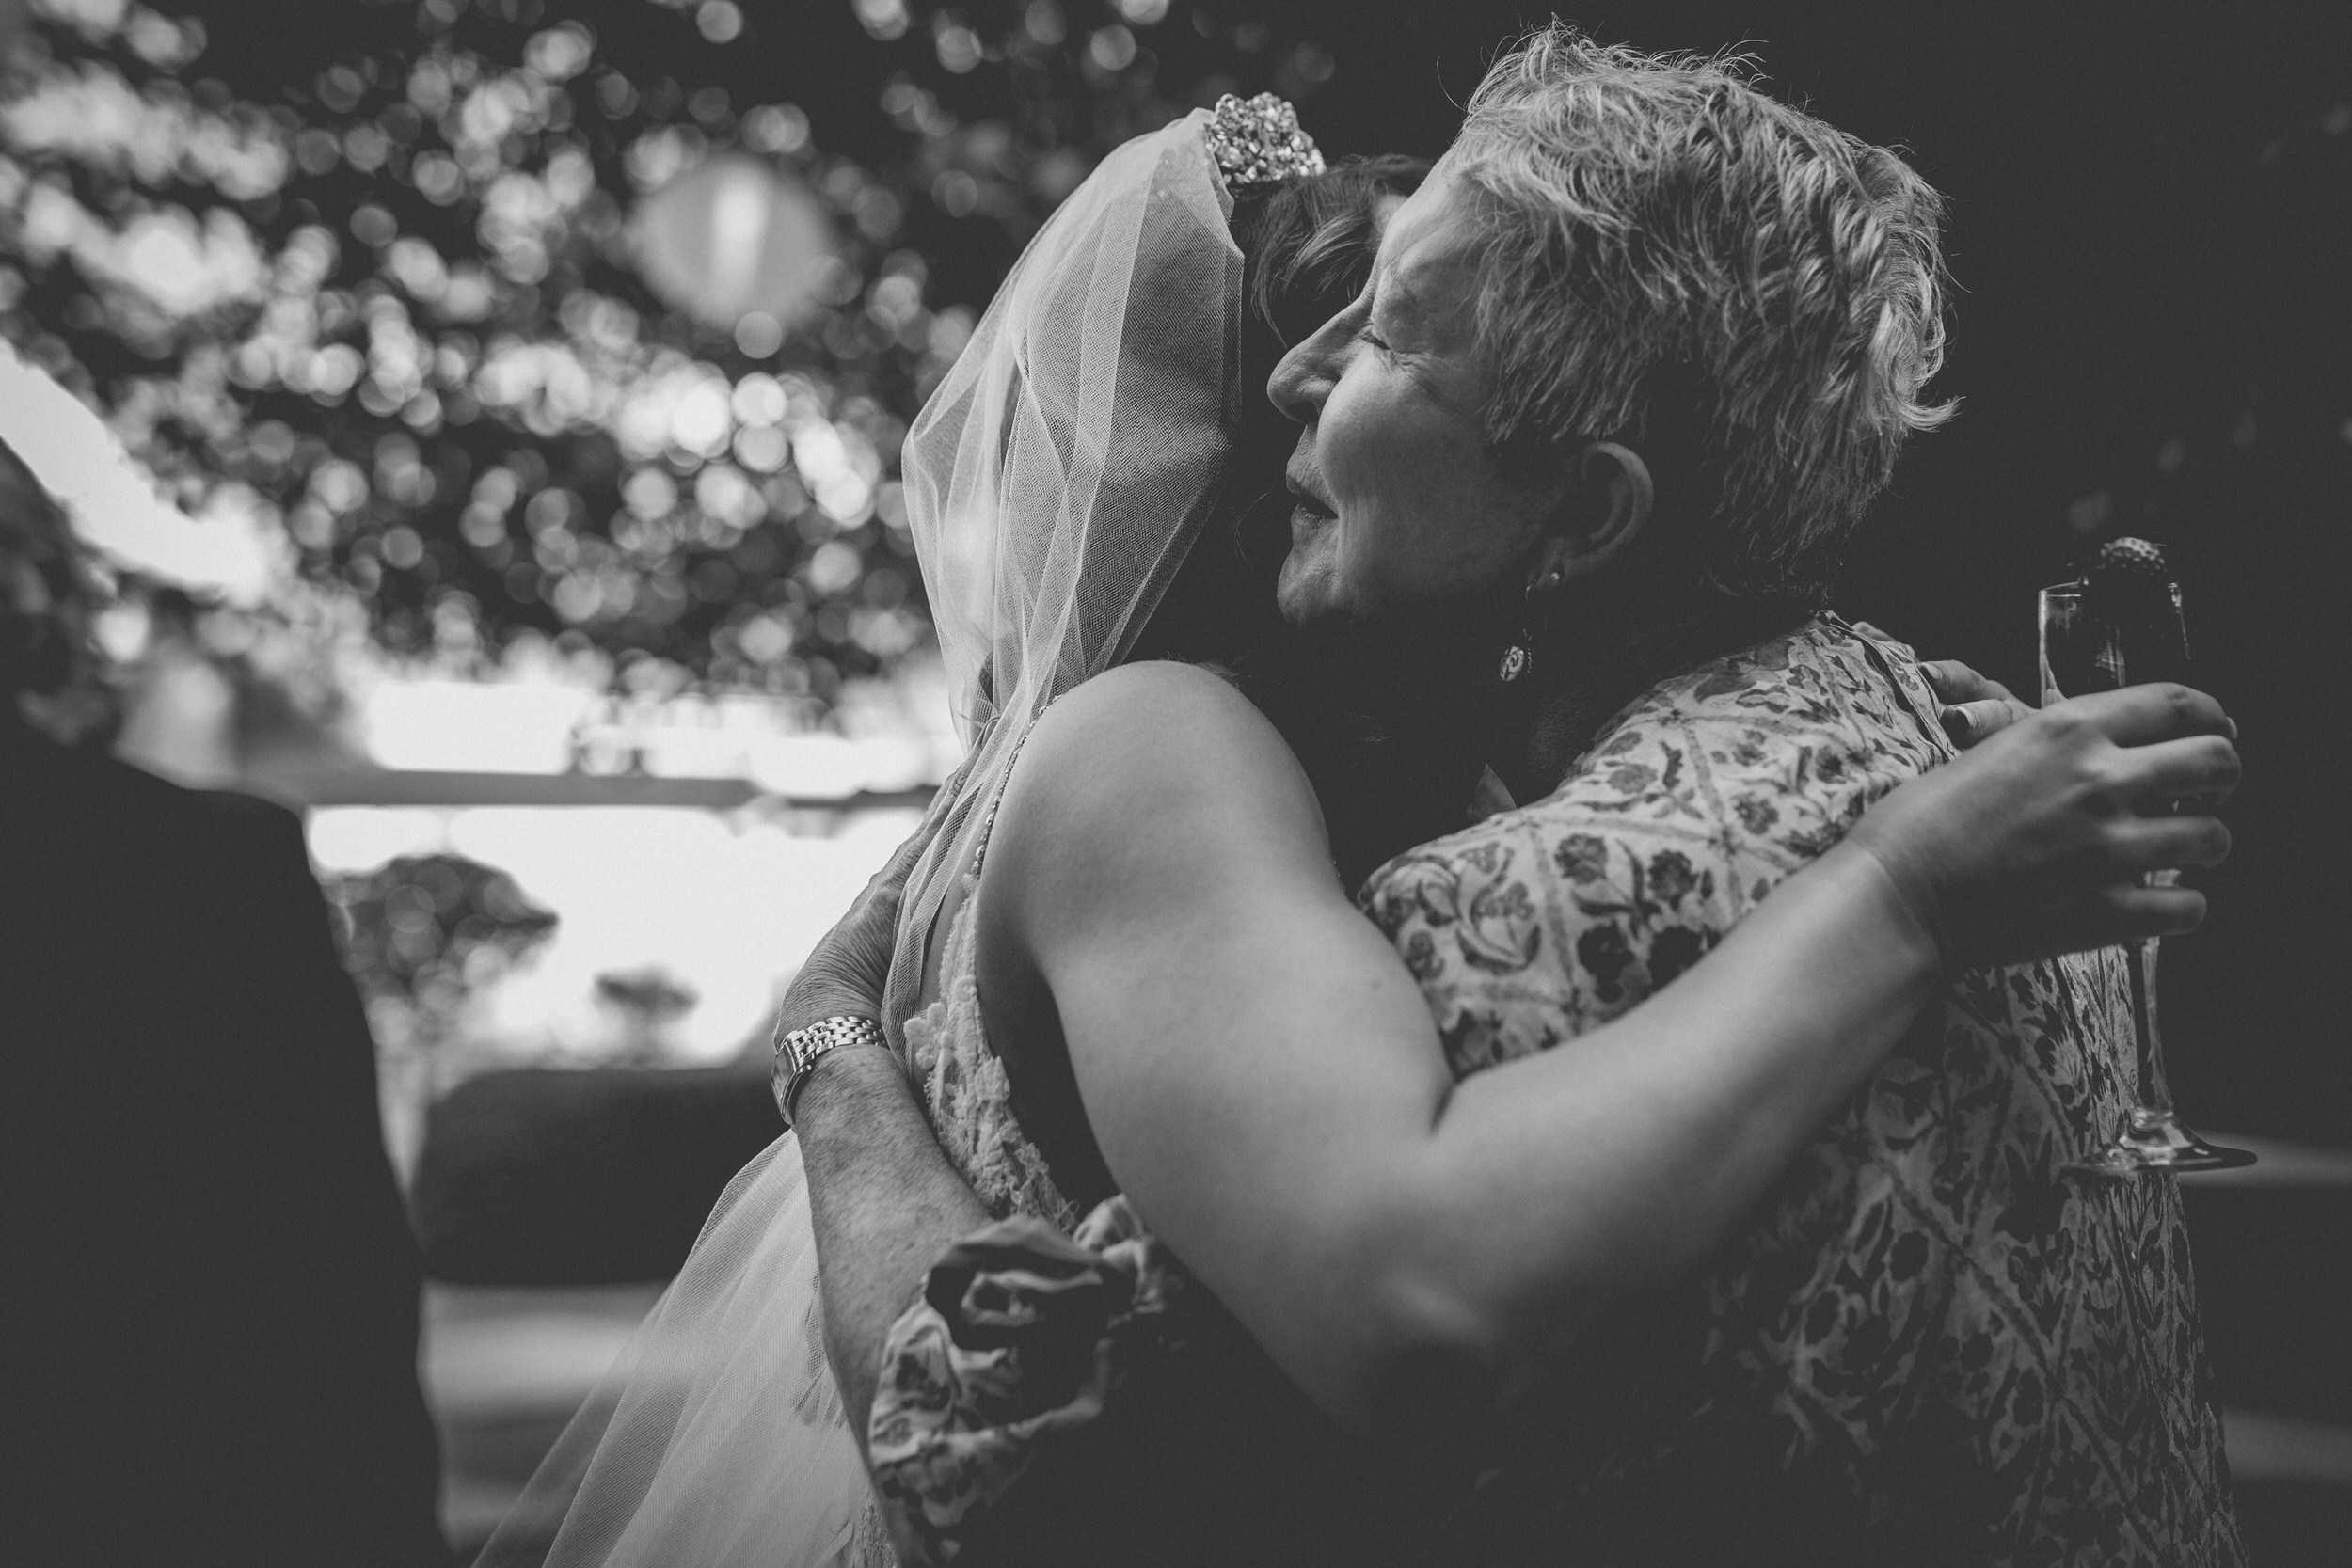 There is nothing quite like a meaningful hug on your wedding day.